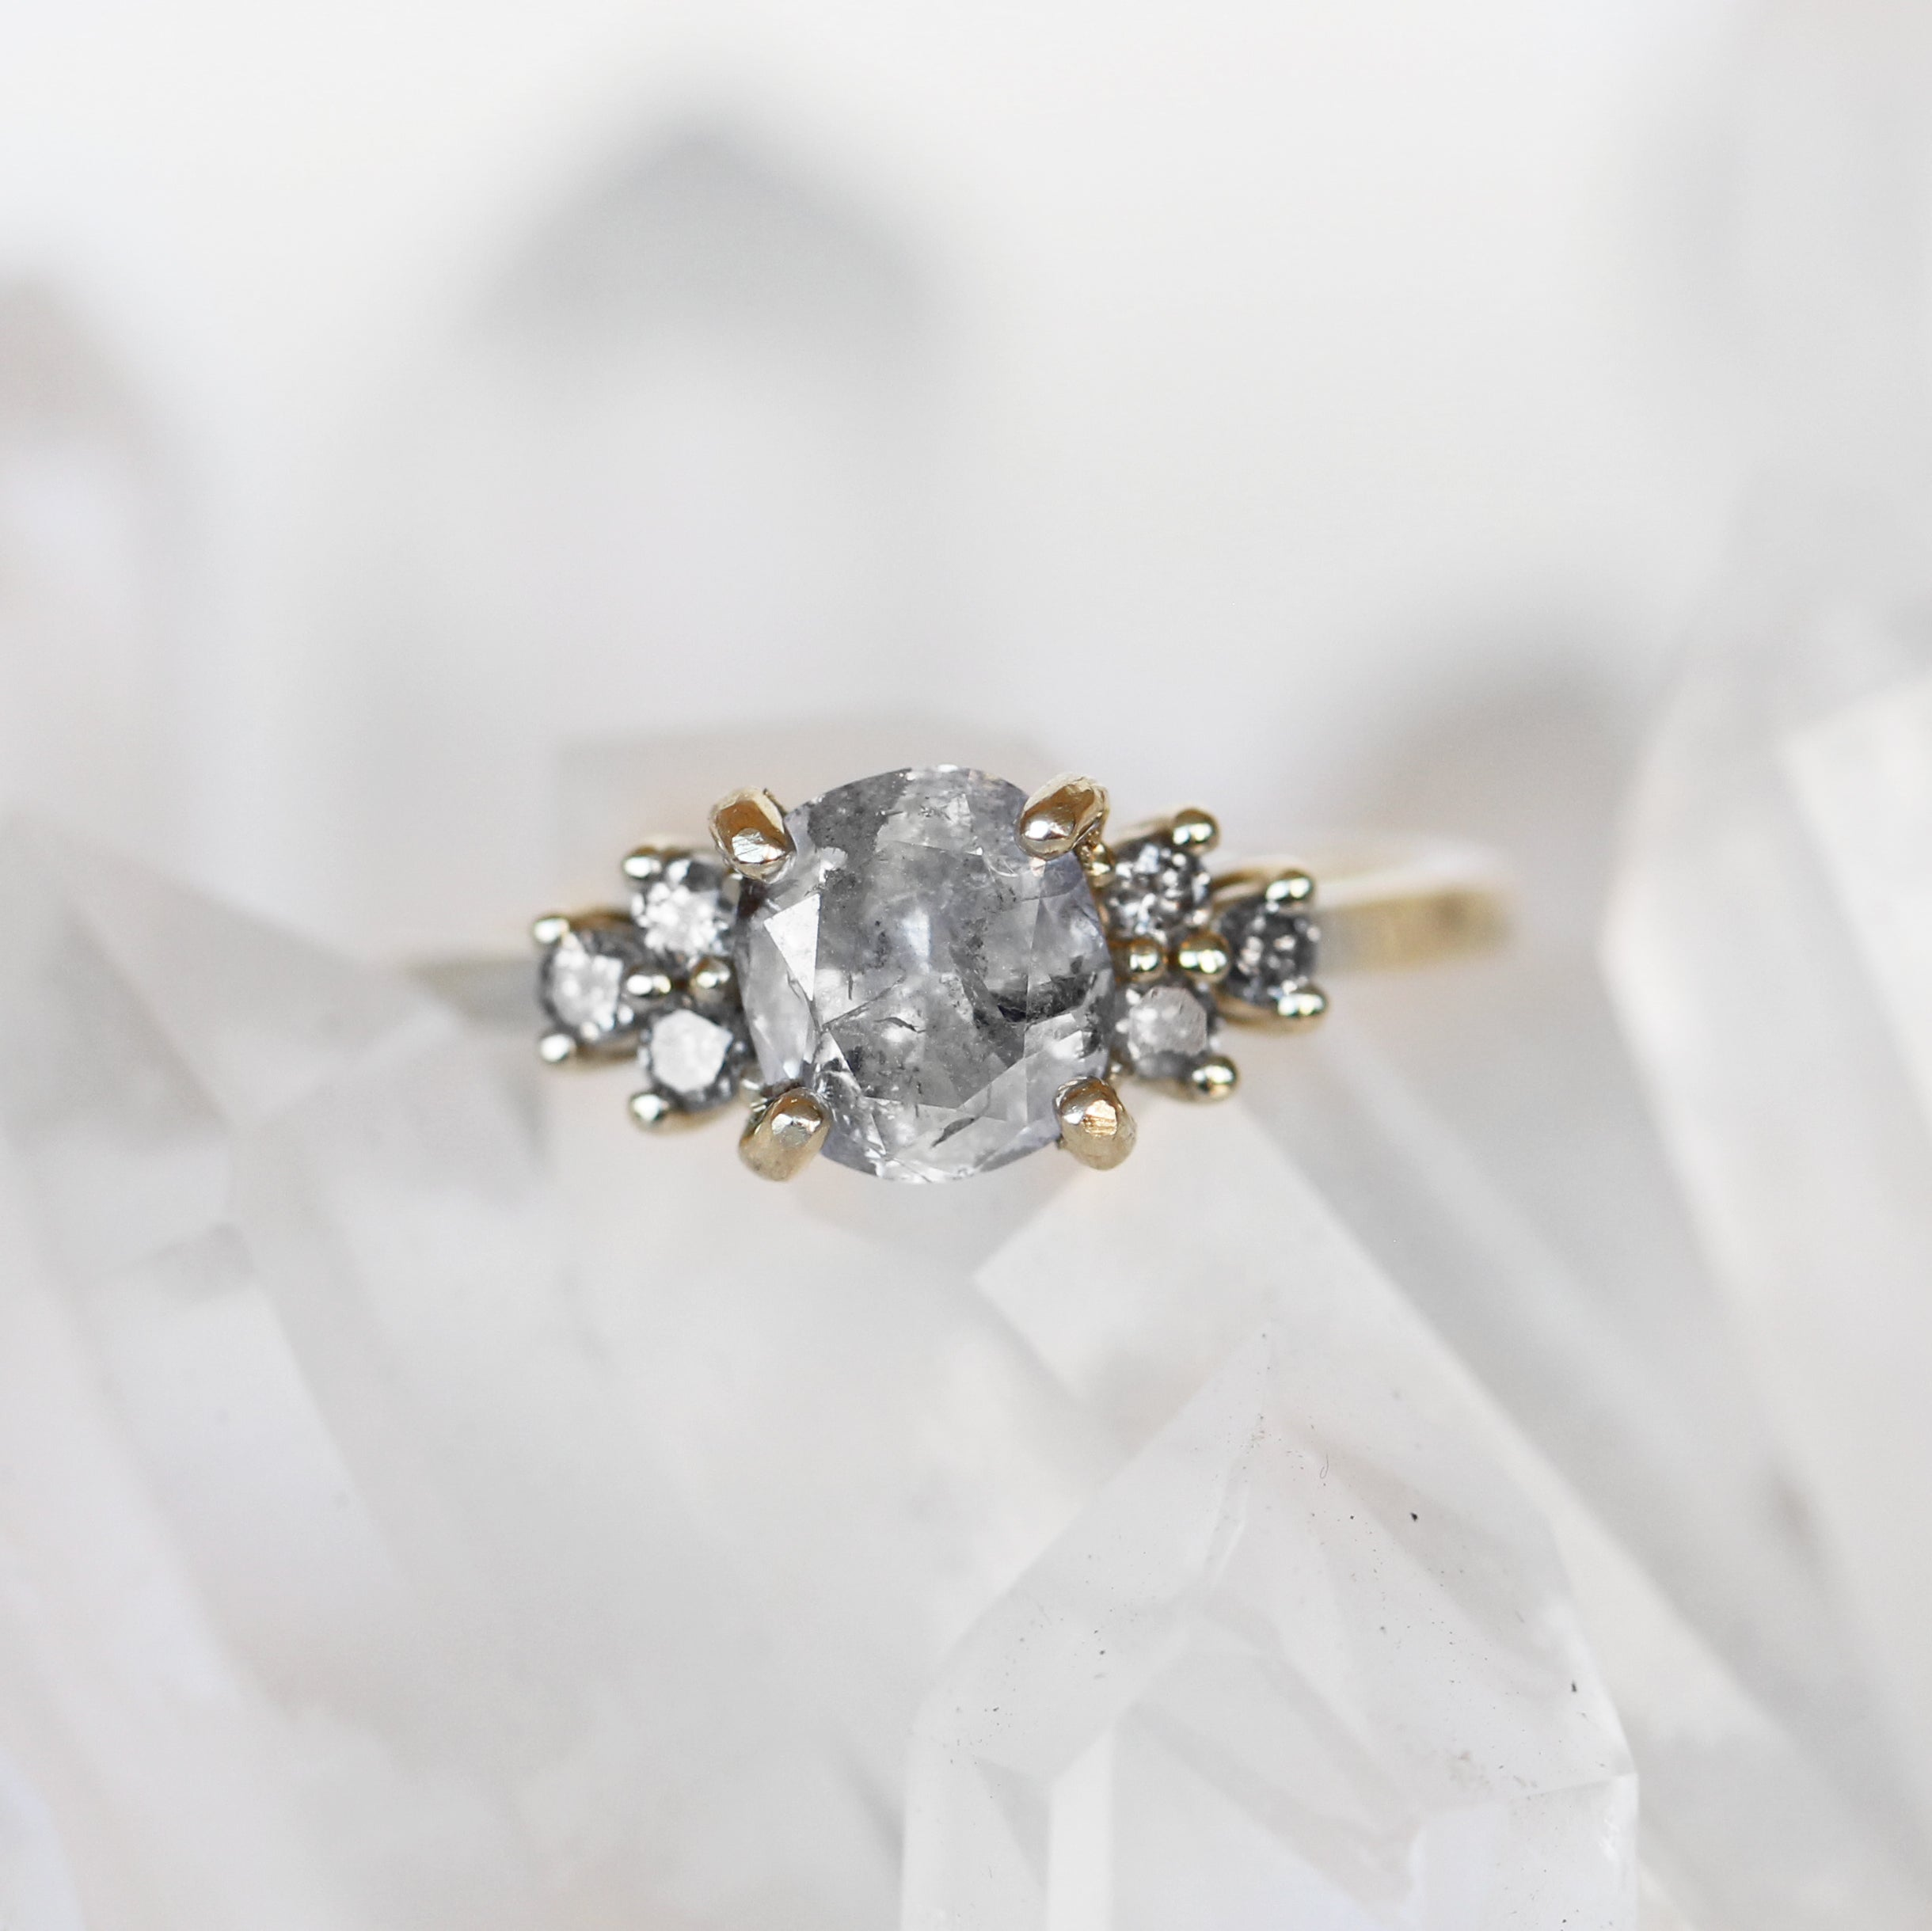 Veragene Ring with a 1.5ct Light Gray Celestial Cushion Diamond in 14k Yellow Gold - Ready to Size and Ship - Celestial Diamonds ® by Midwinter Co.